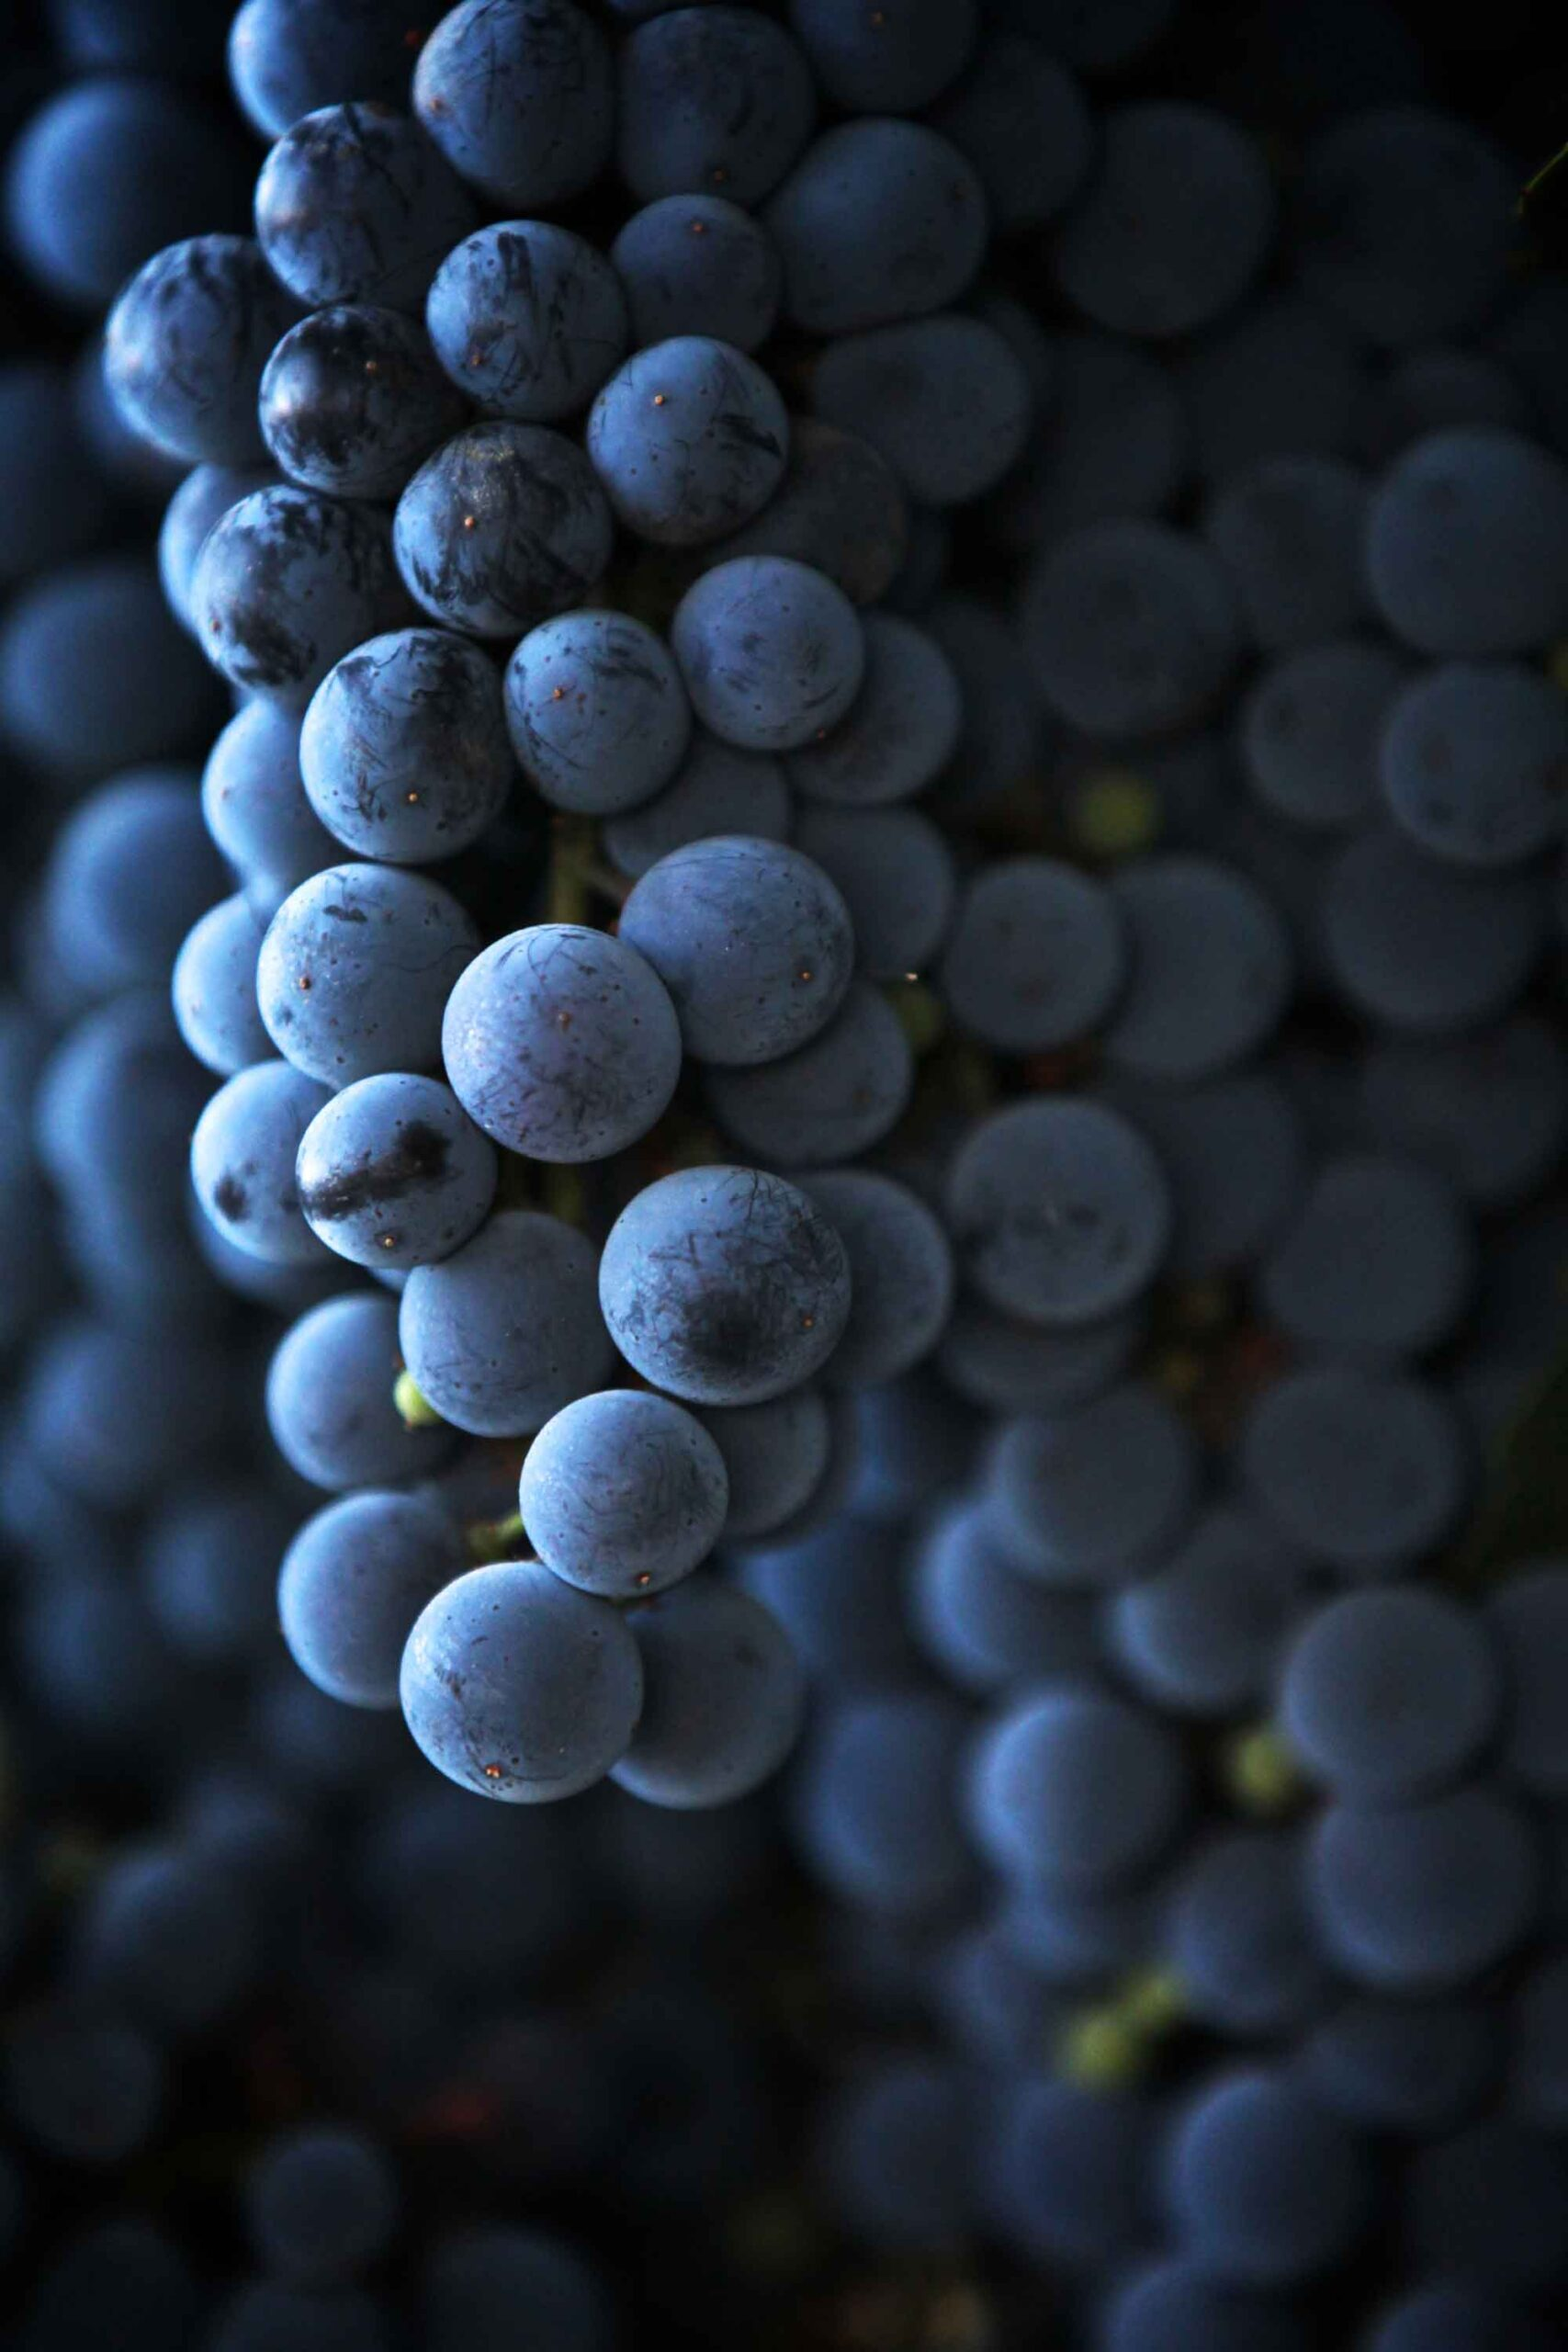 grapes,wine maker,vino,cabernet,syrah,grapes,heather van gaale